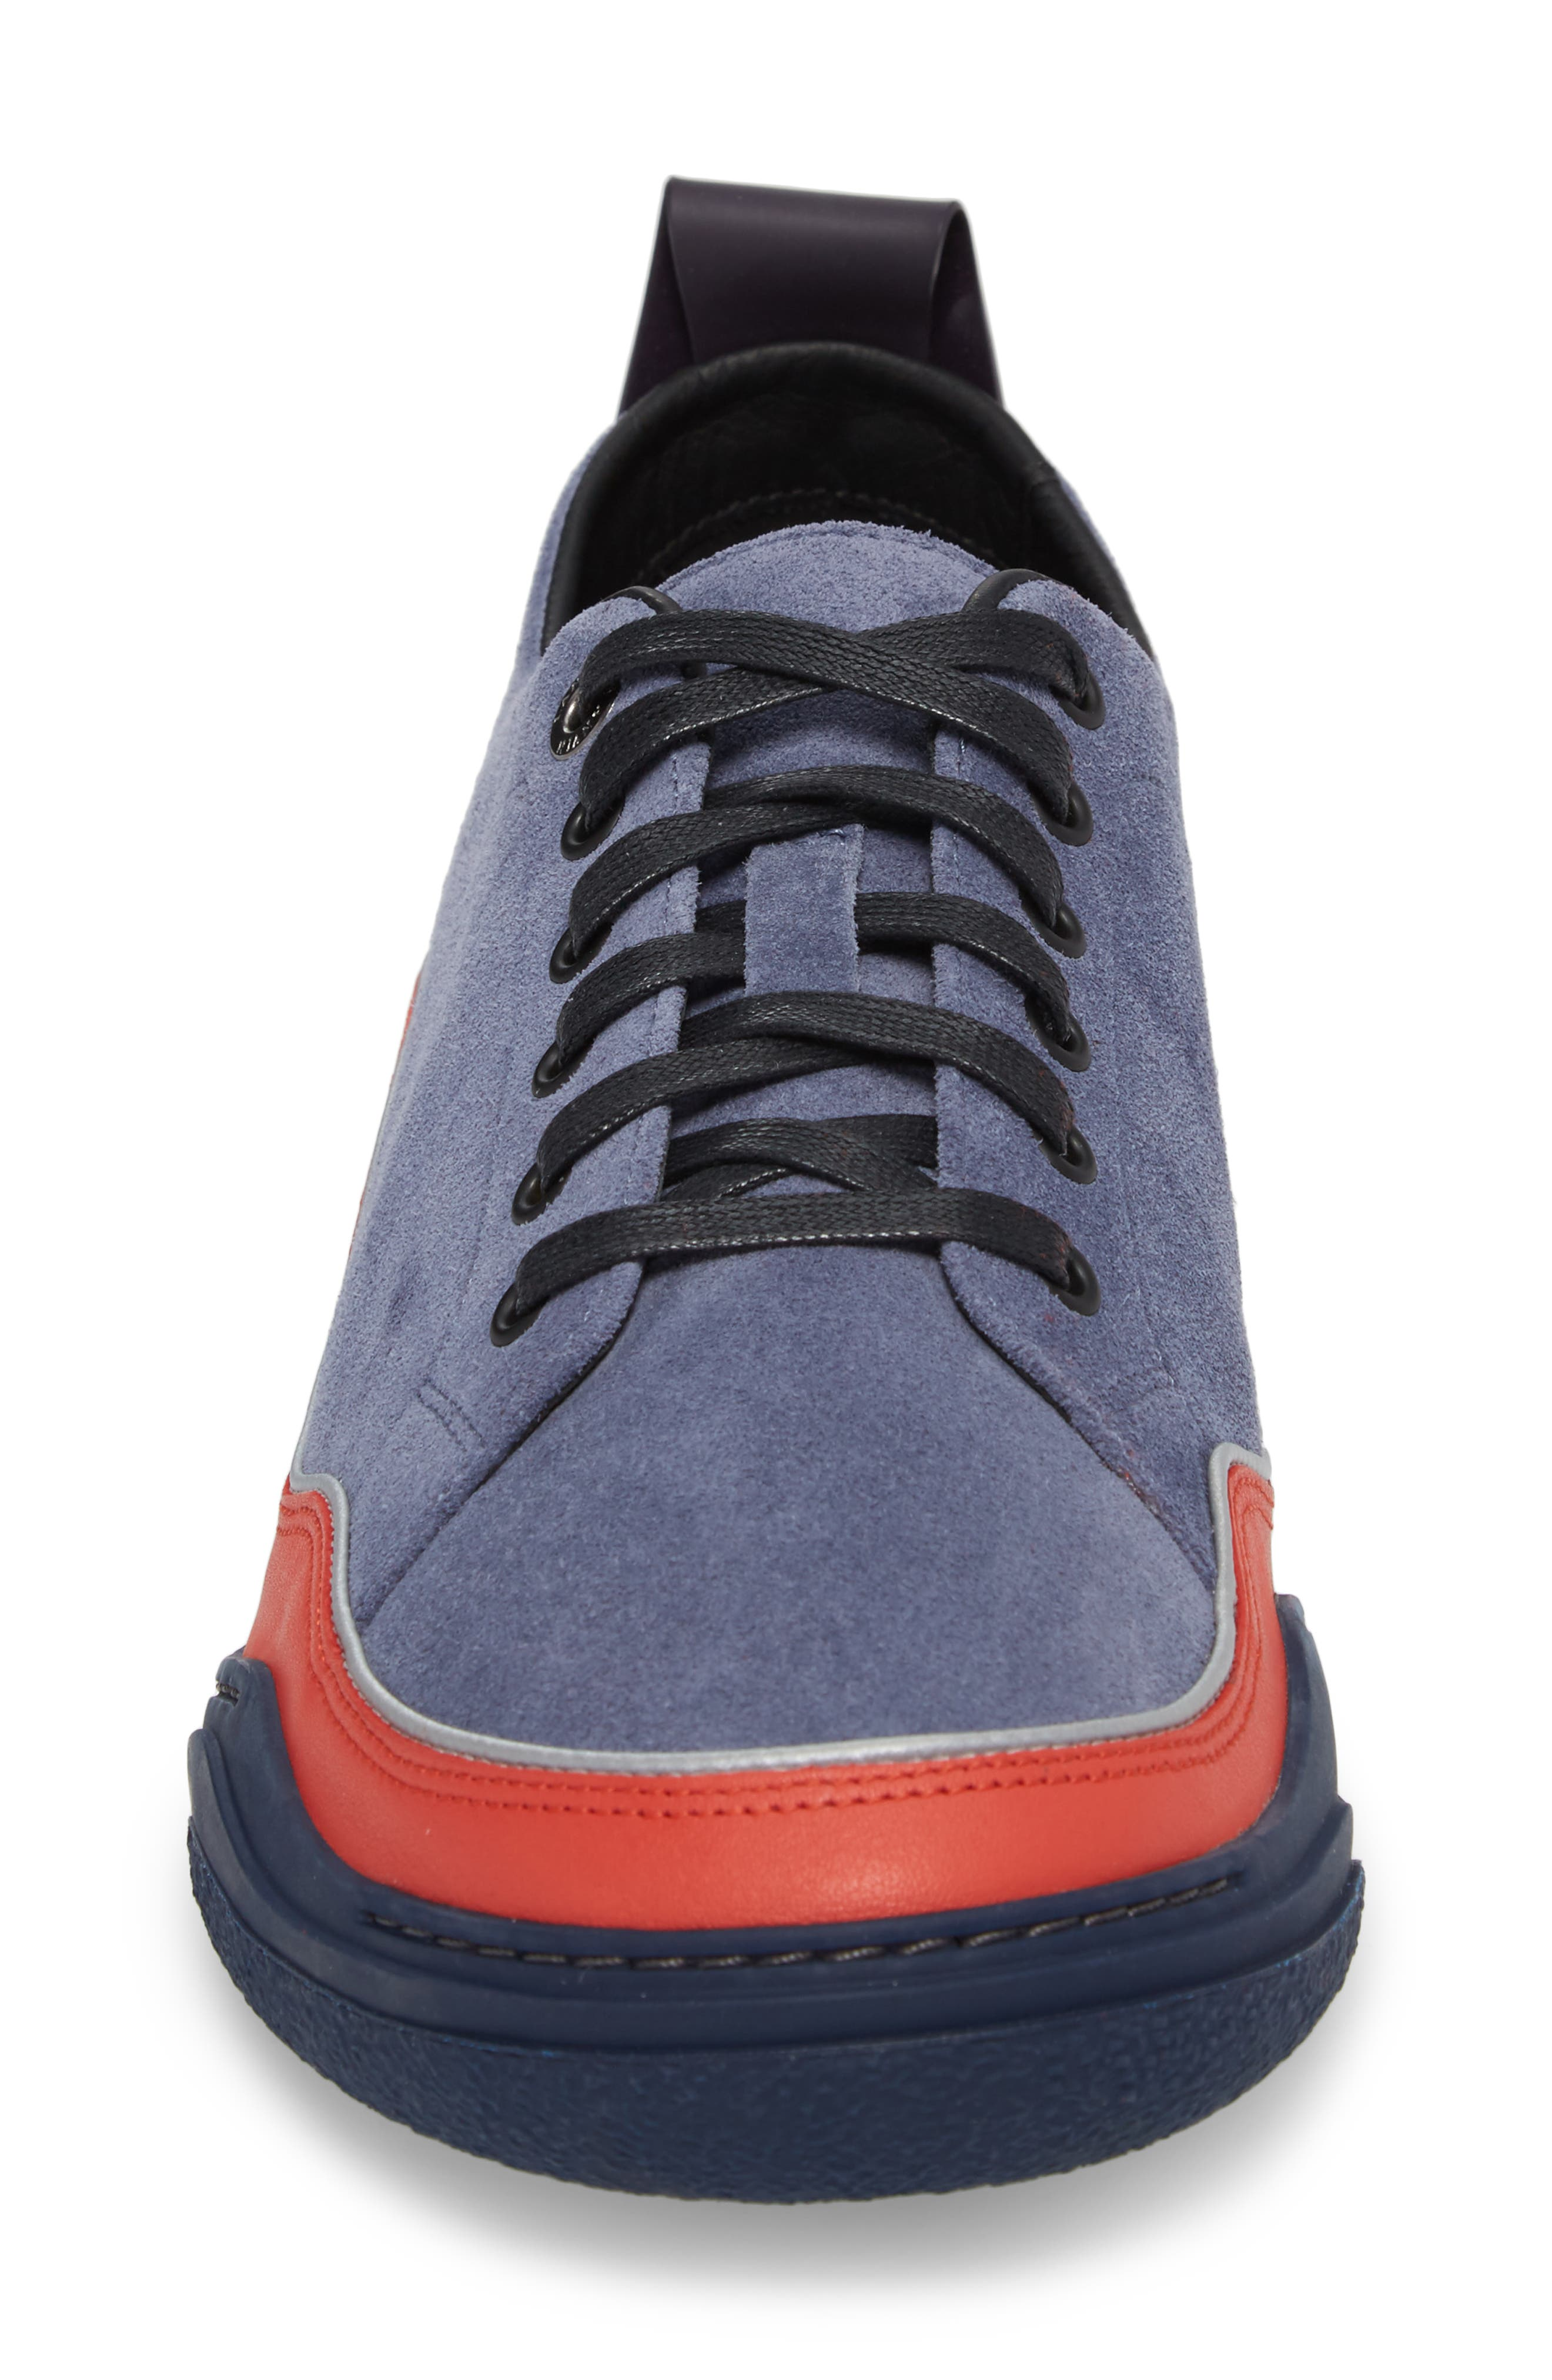 LANVIN,                             Diving Sneaker,                             Alternate thumbnail 4, color,                             450